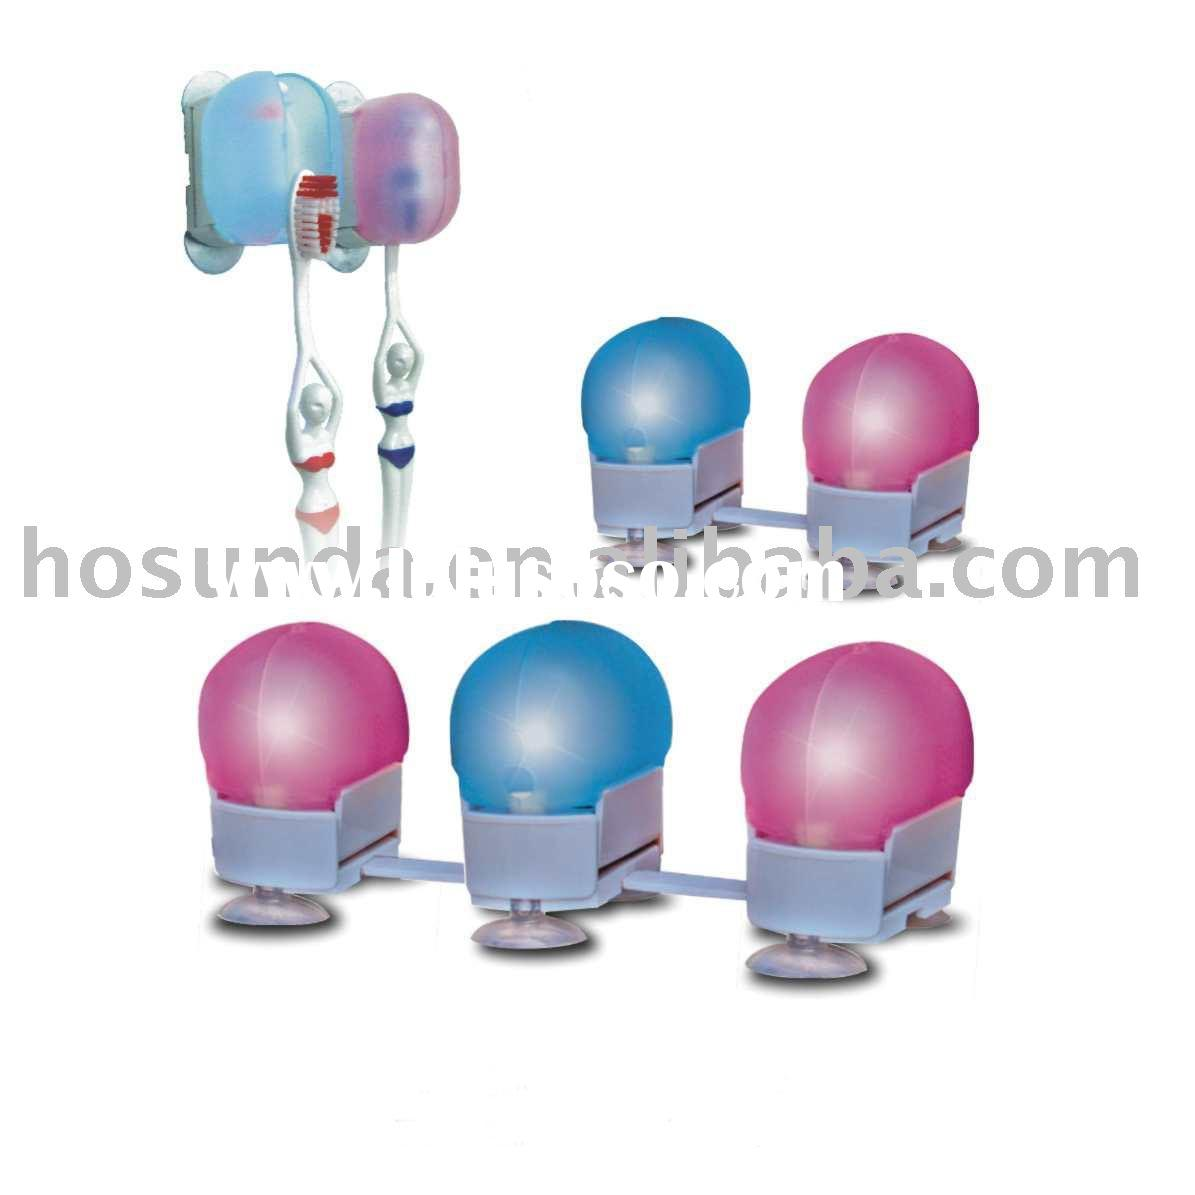 sterilizer,ultraviolet toothbrush,dental care product